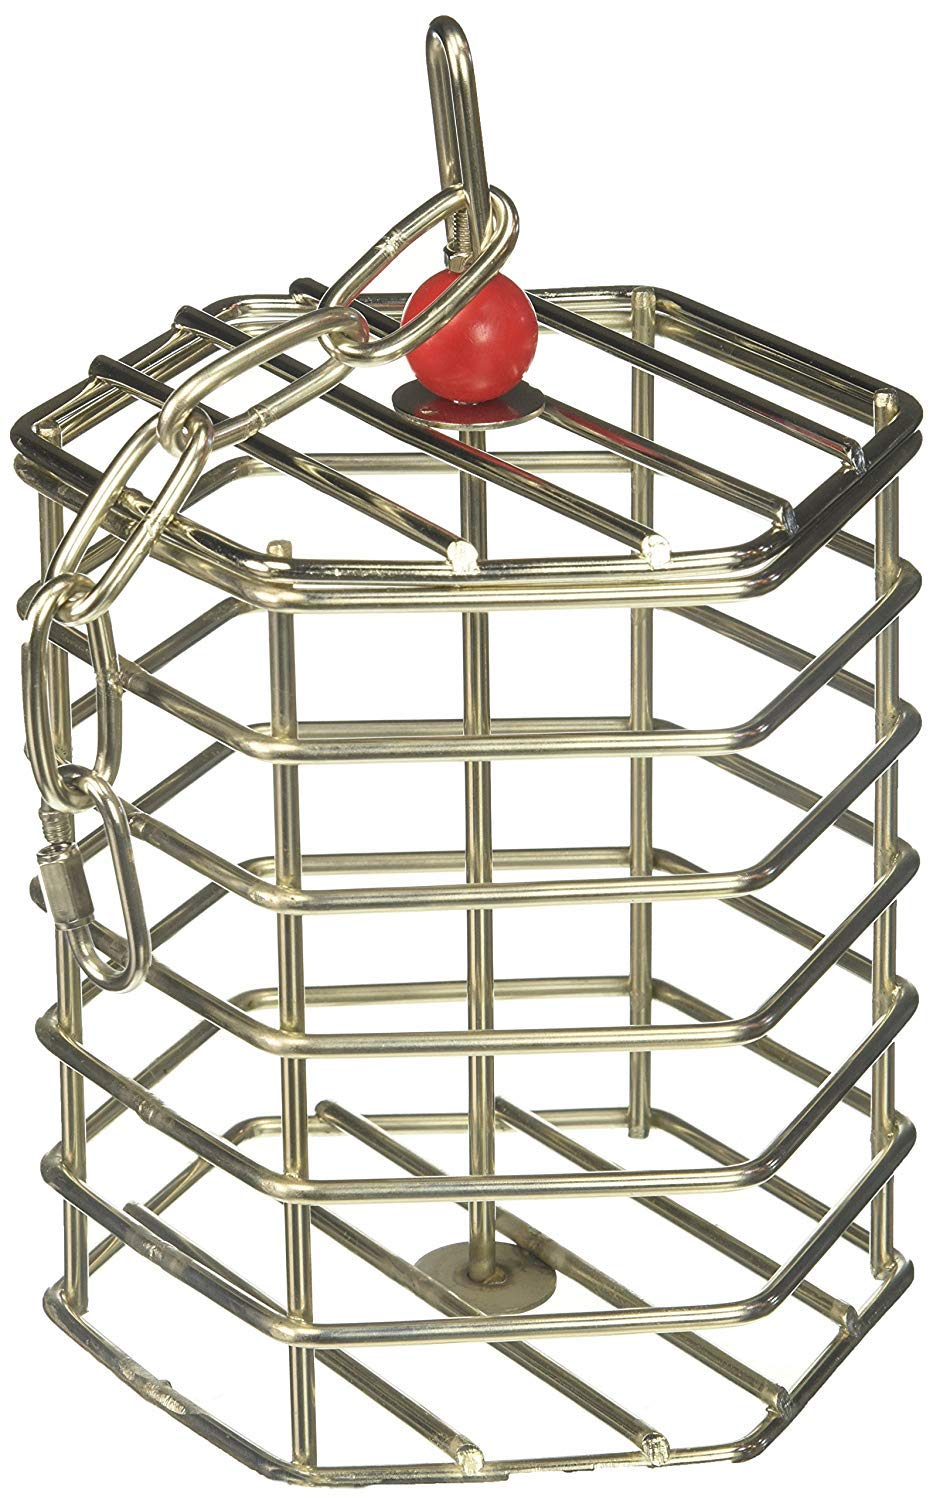 Caitec Stainless Steel Baffle Cage Large 6 x 6in ''Sale Caitec Bird Toys - Foraging Toys'' by Caitec Corp